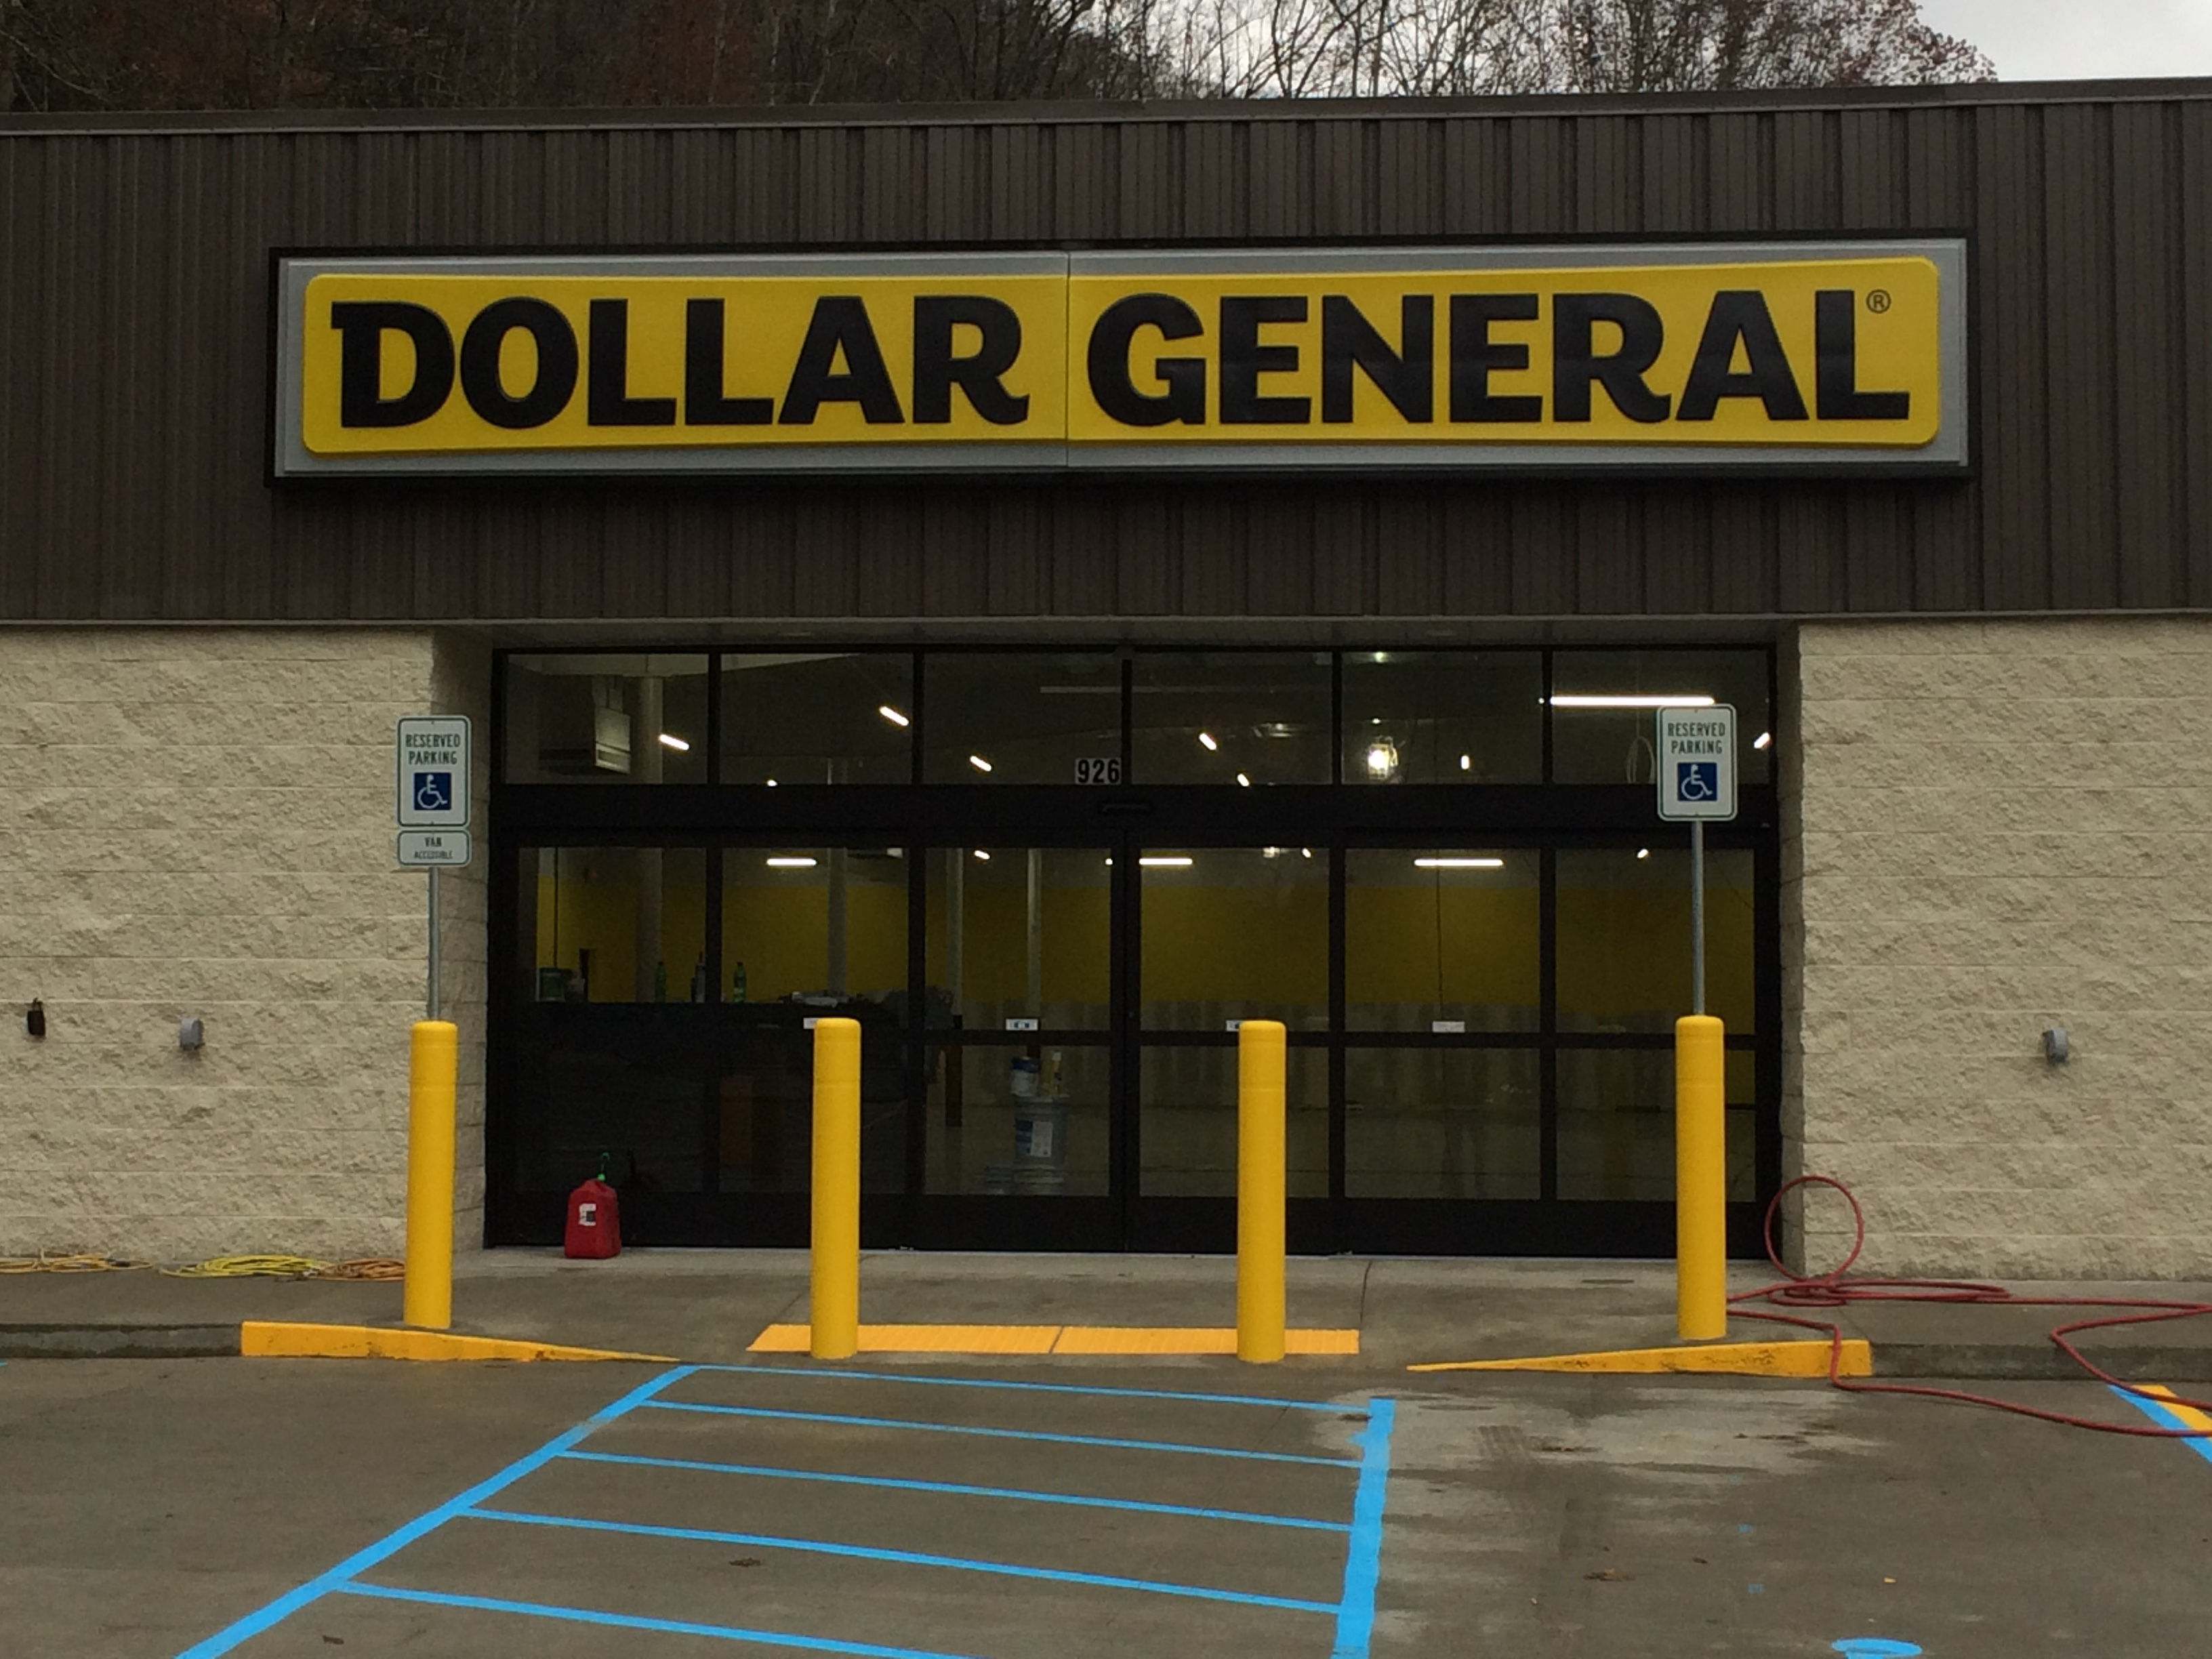 outside 1, dollar general, foster wv, shopping, supermarket, retail, commercial, commercial construction